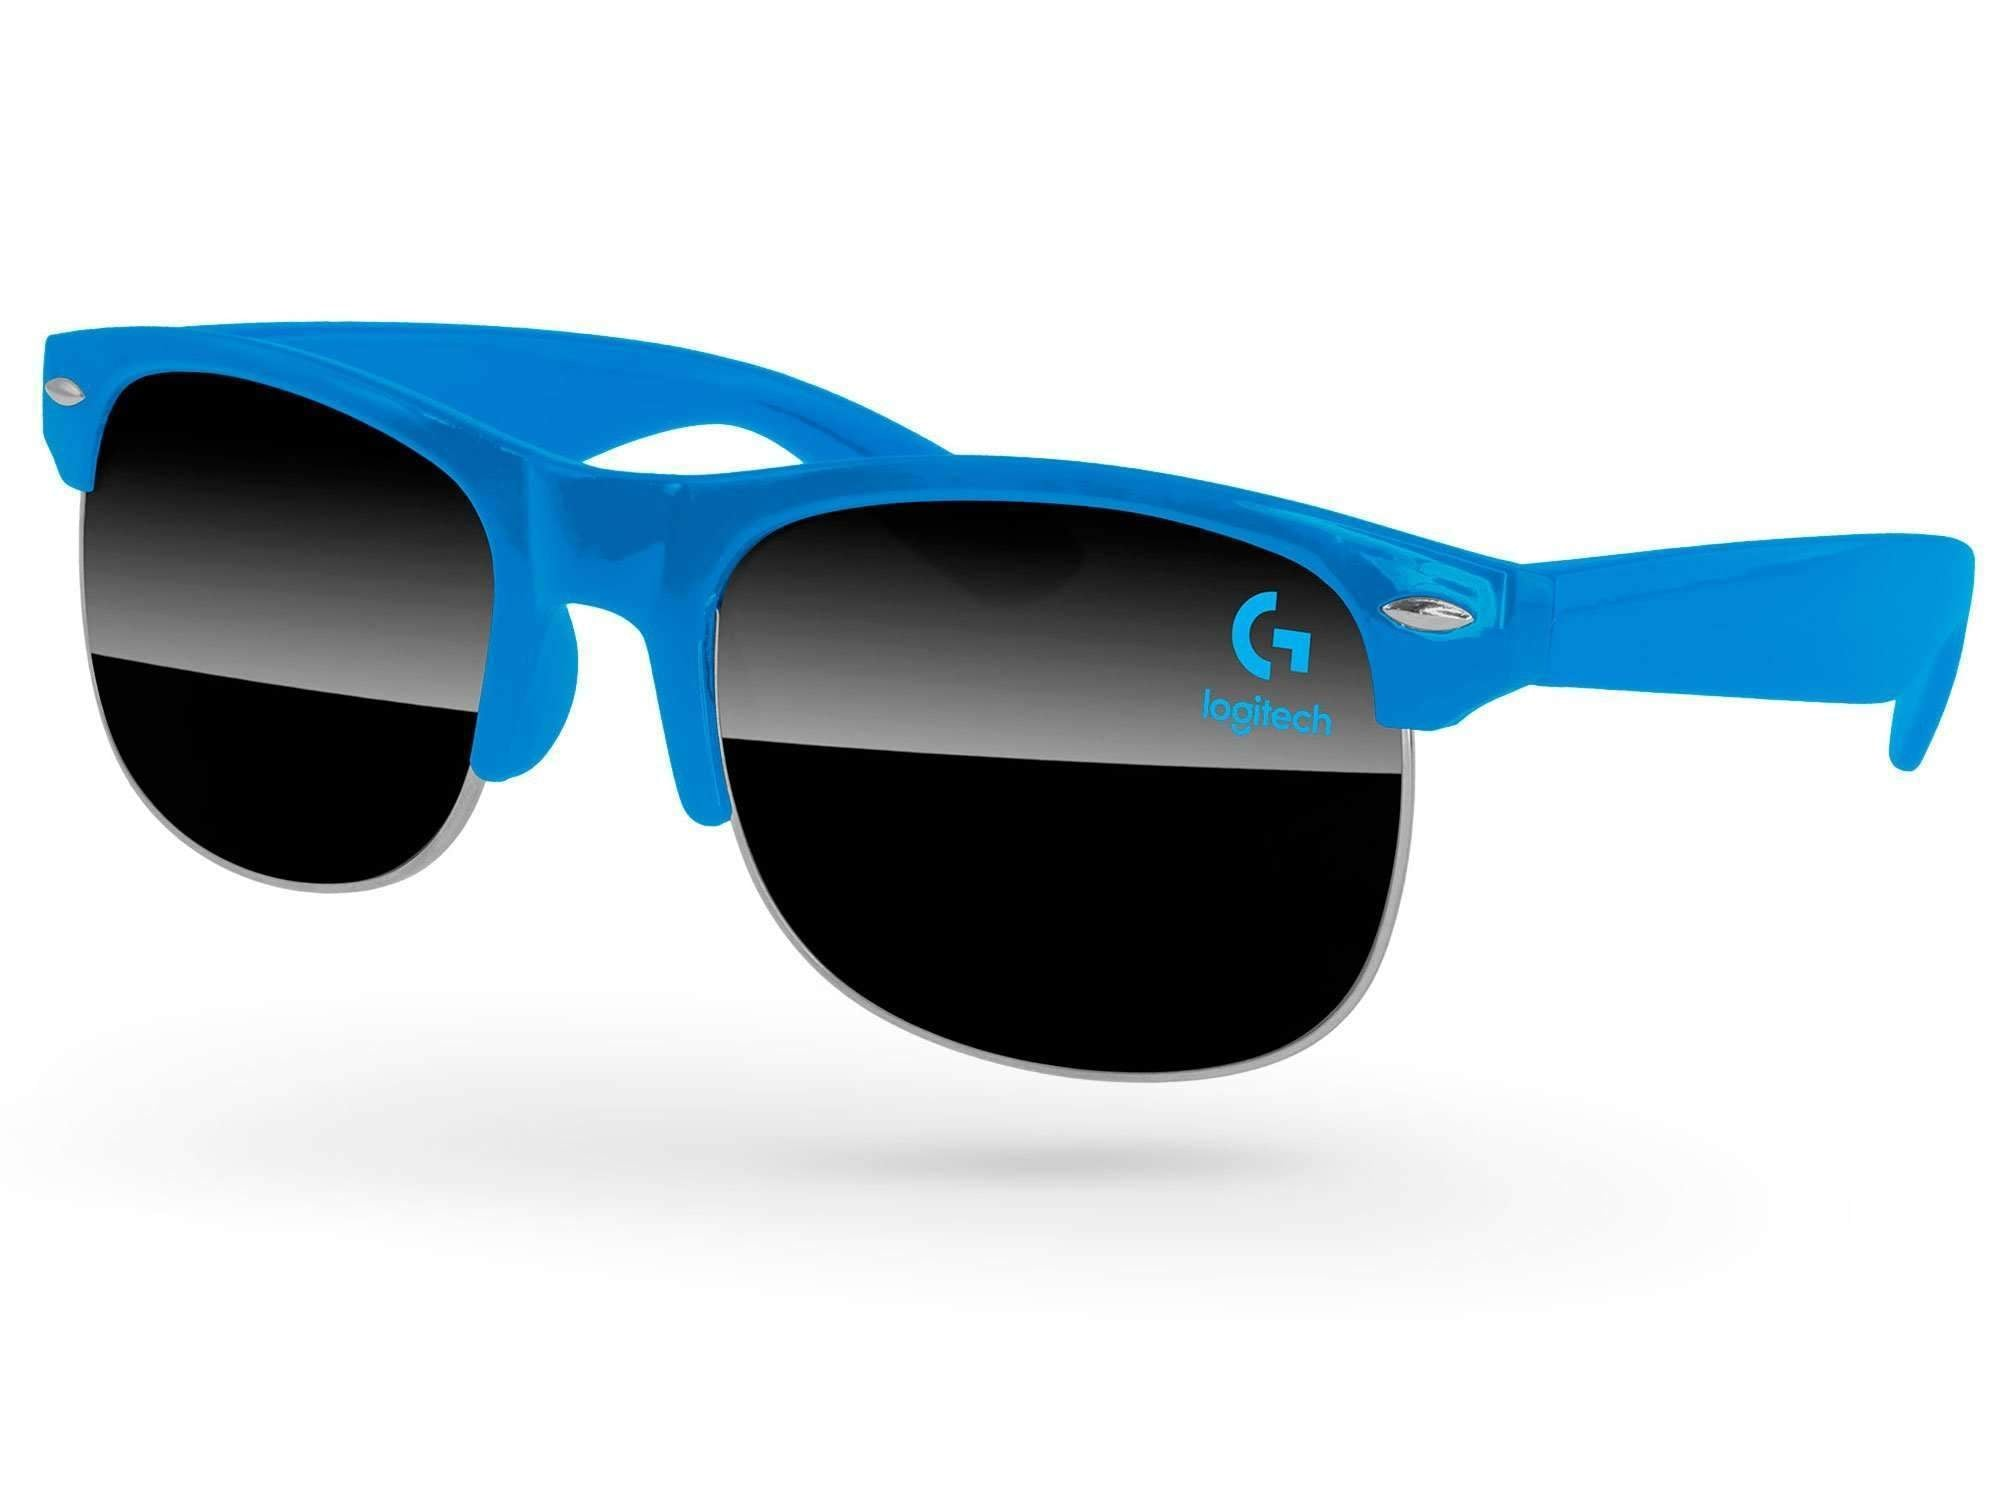 CD500 - Club Promotional Sunglasses w/ 1-color lens imprint